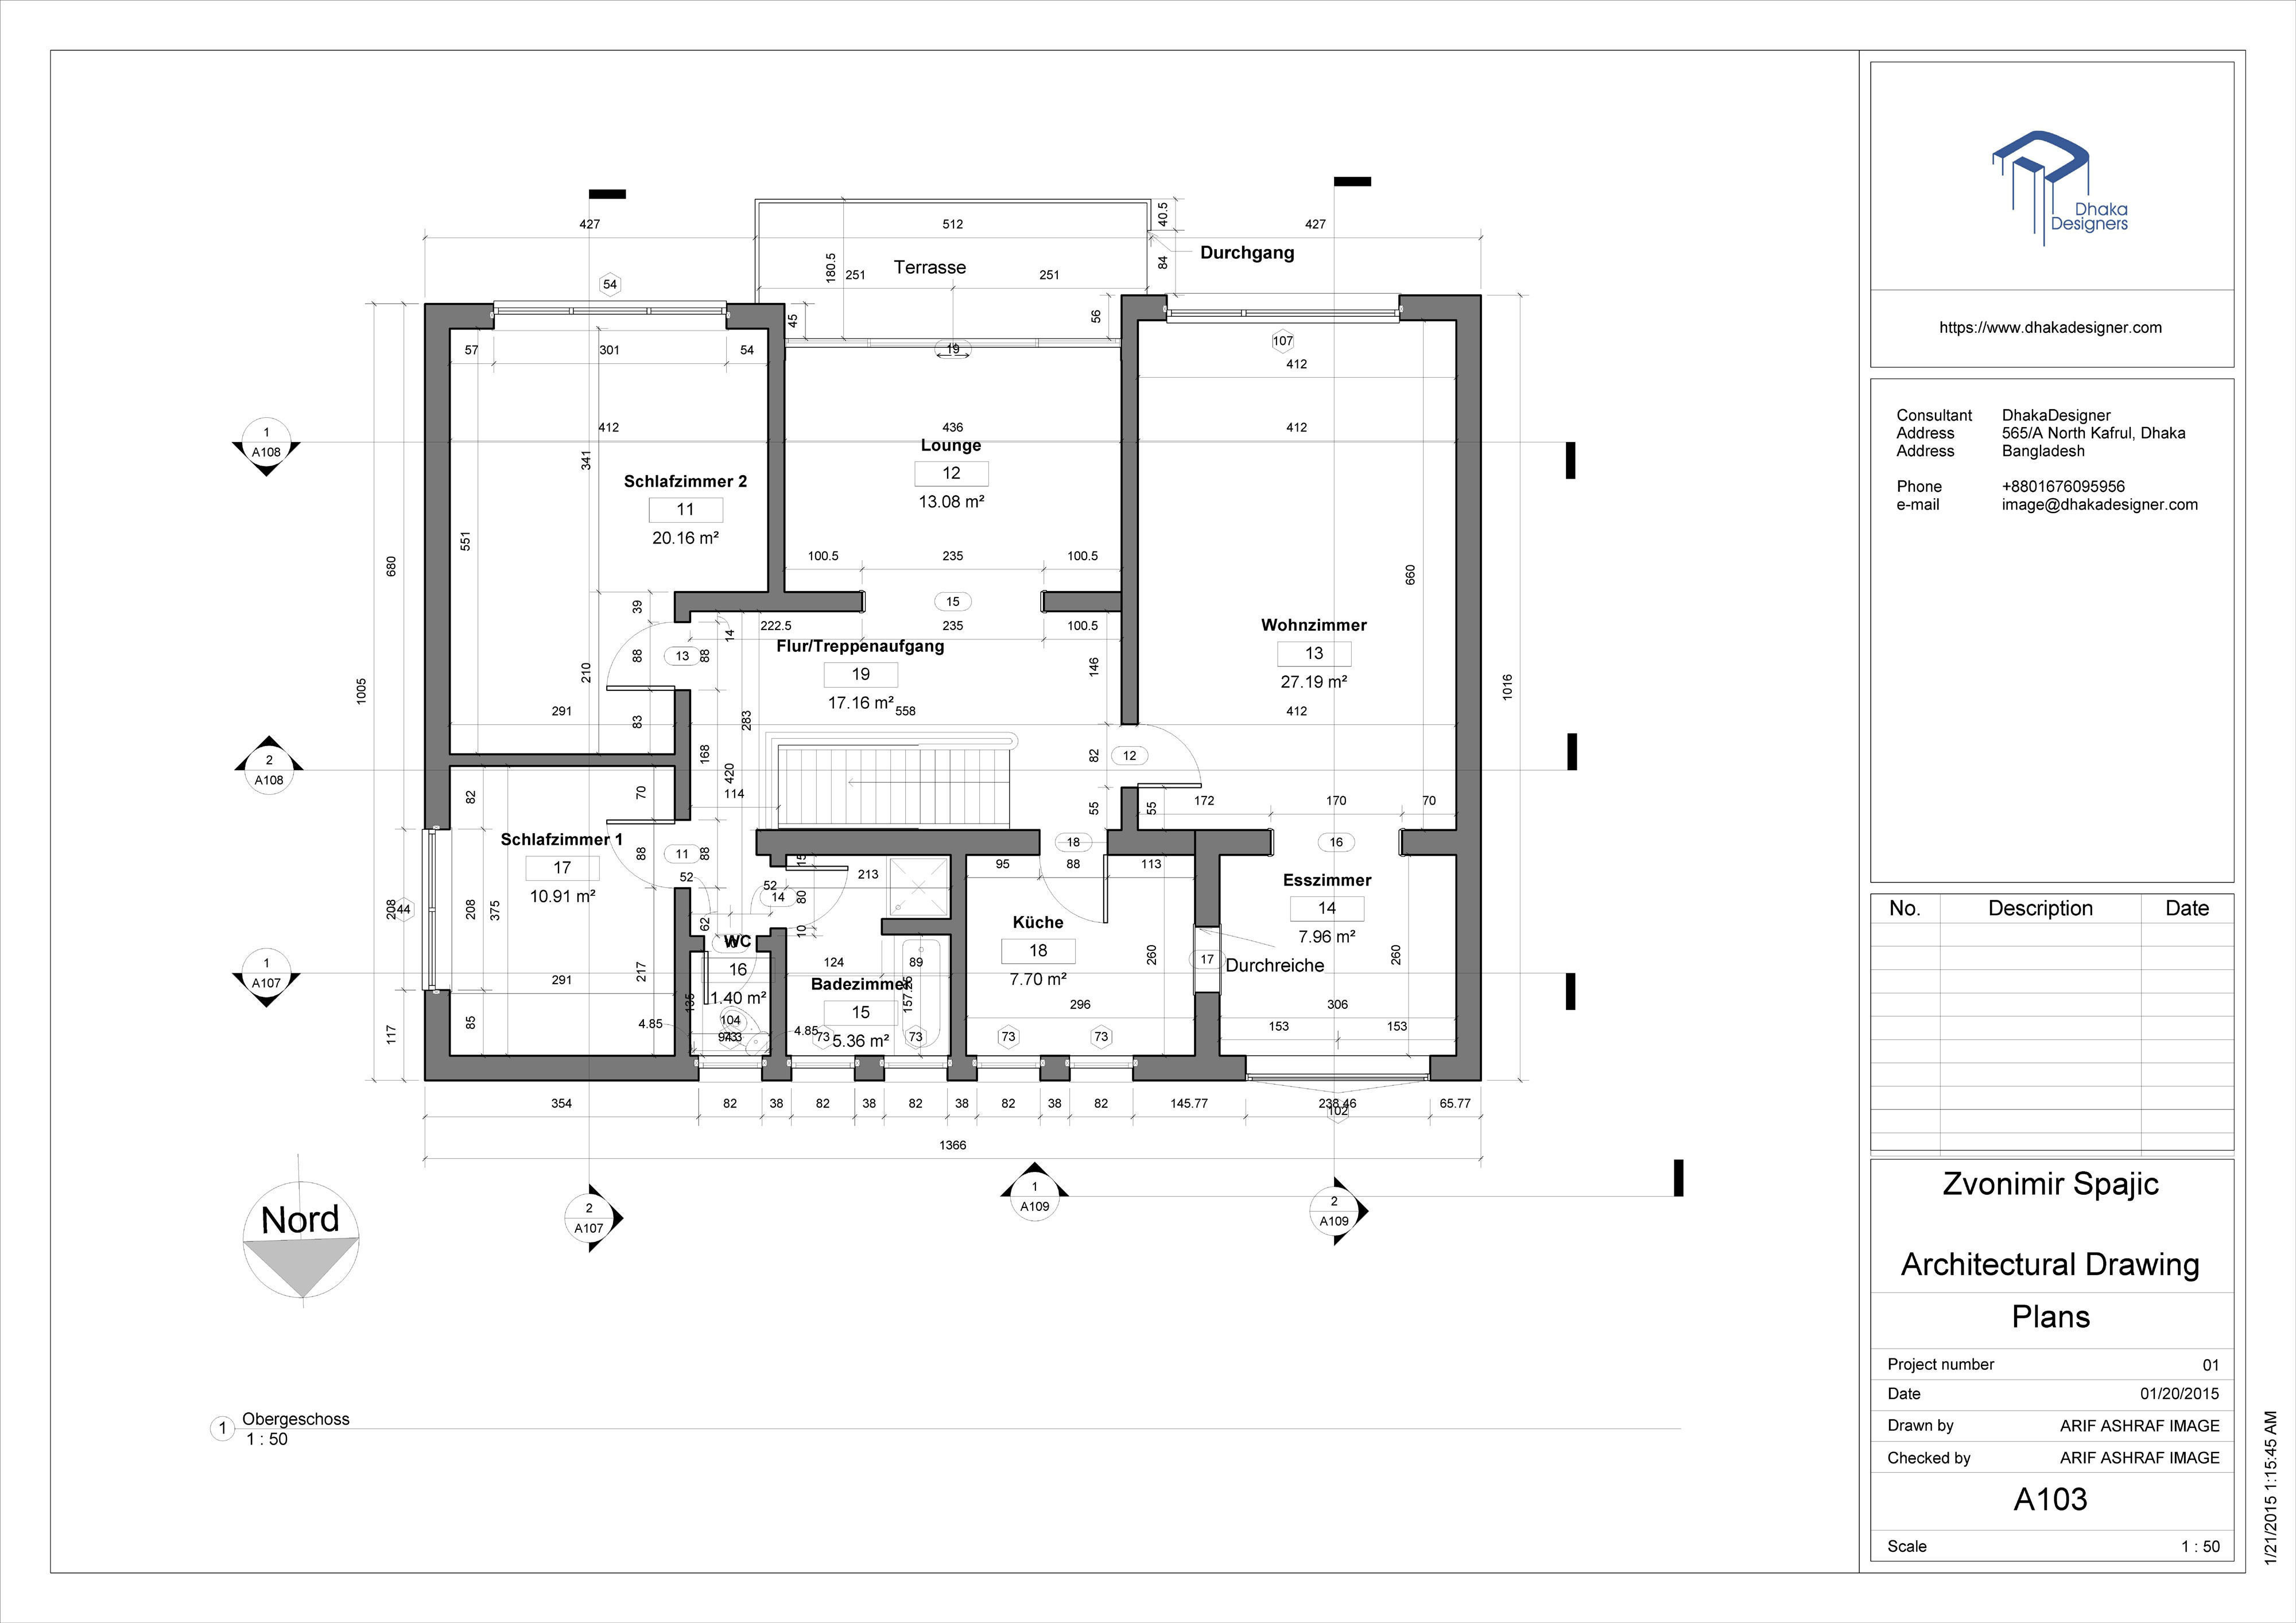 ... Architectural Drawing In Revit 3d Model Rvt 4